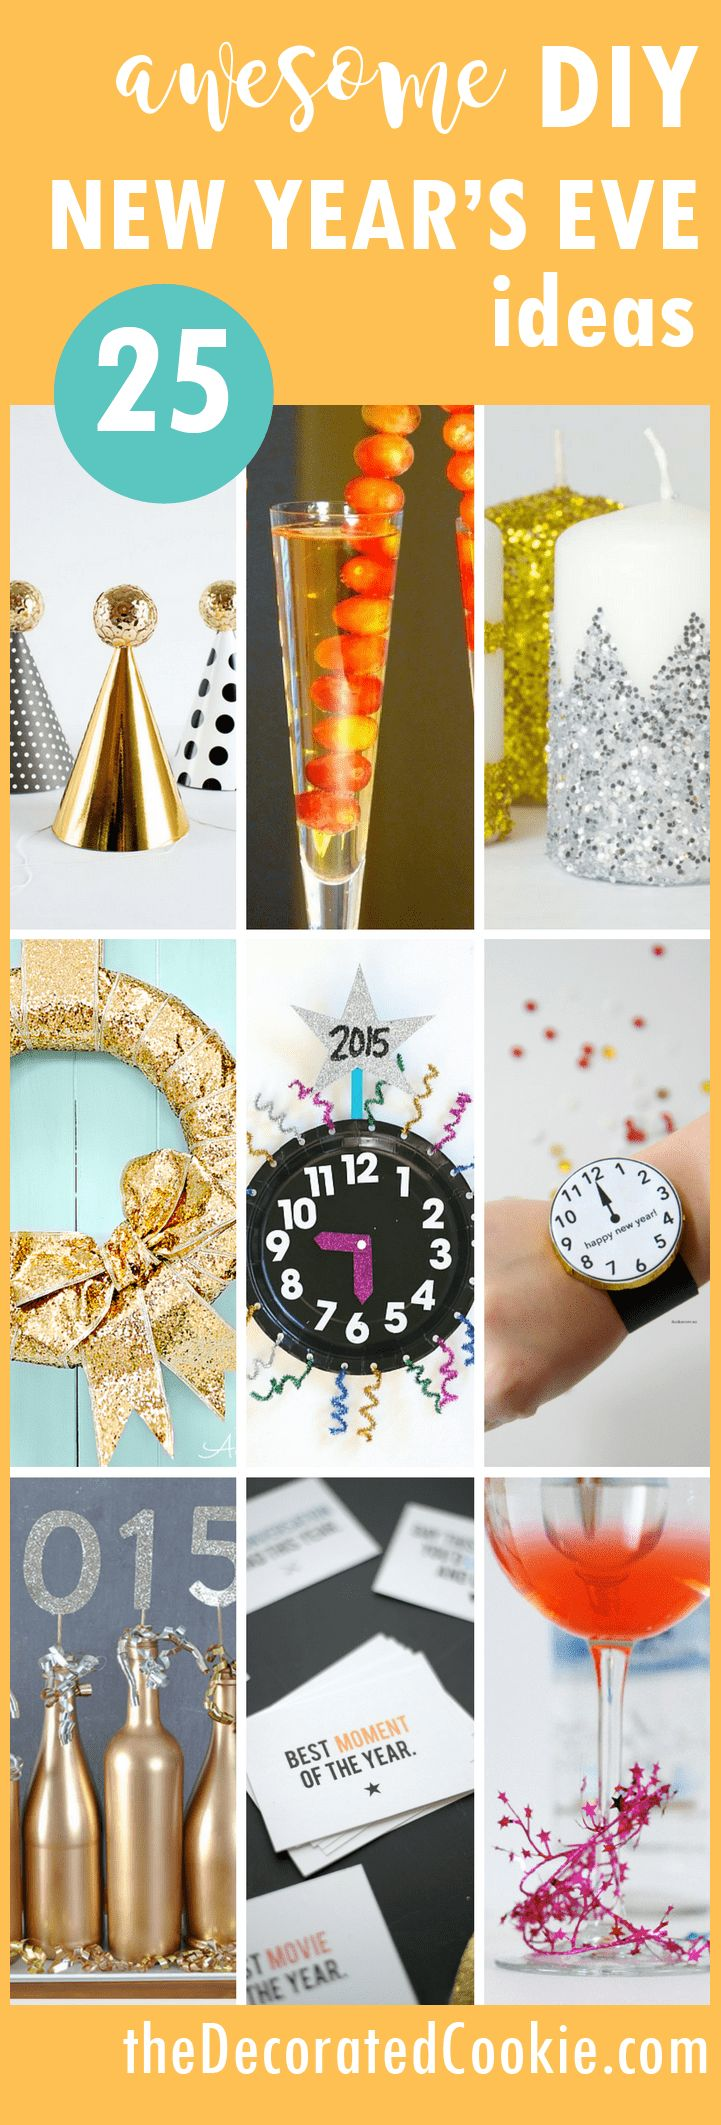 25 awesome DIY New Year's Eve ideas for your holiday party.